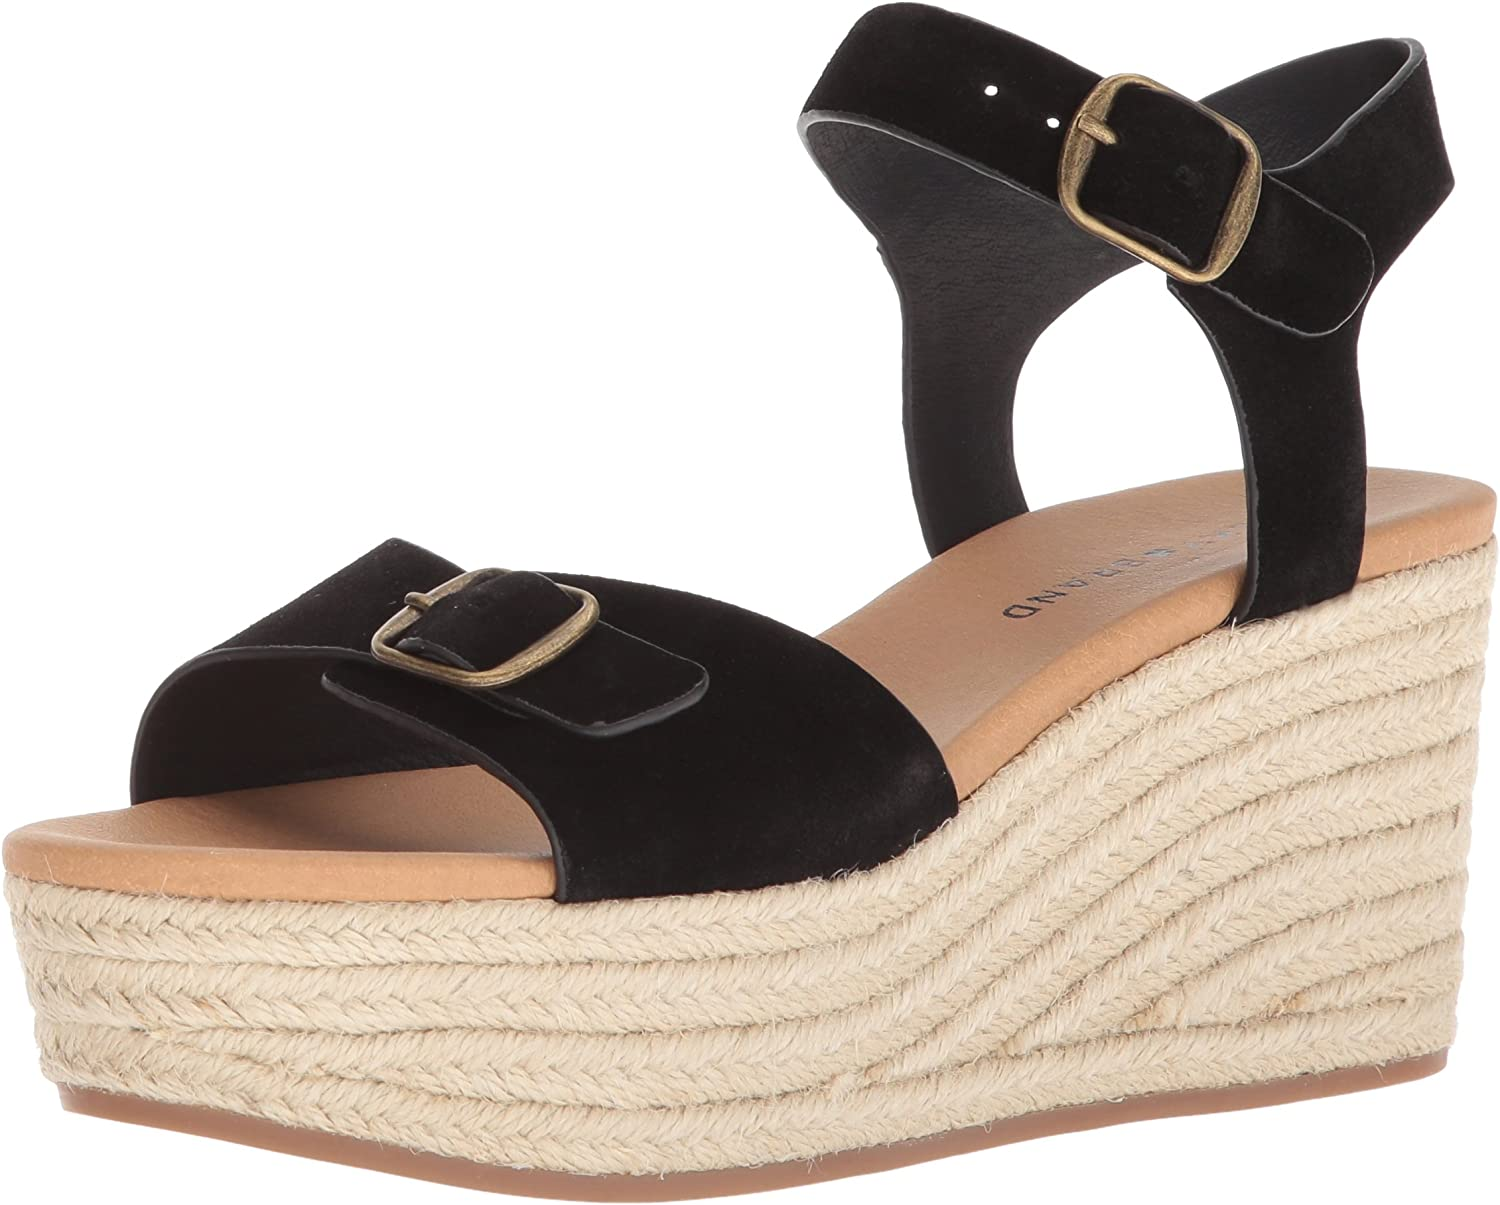 Lucky Brand Womens Naveah Espadrille Wedge Sandal